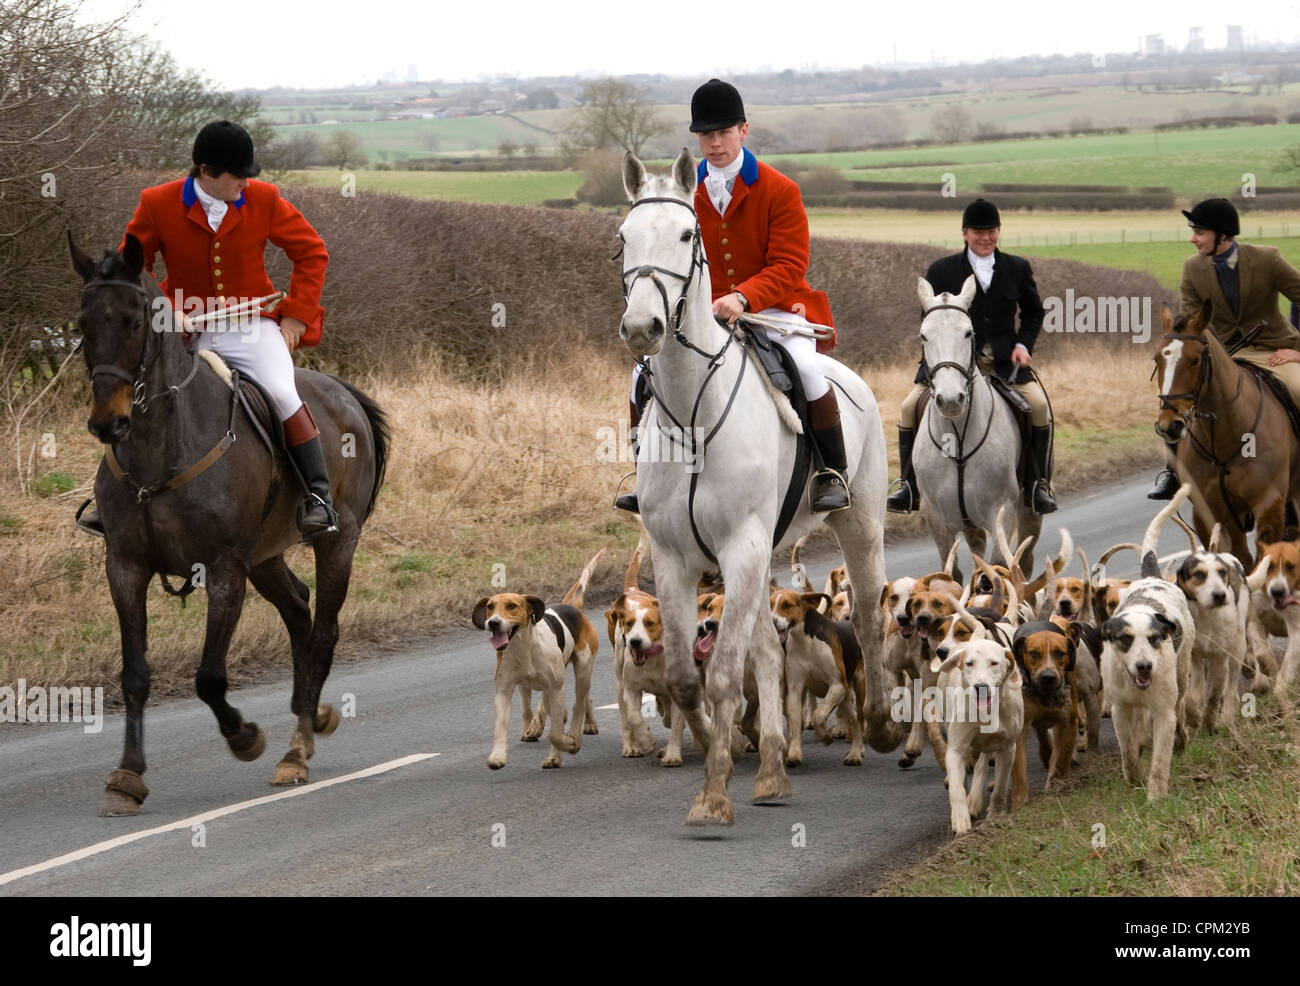 Master fox hunter leads the pack of hounds on roads around Great Stainton in County Durham - Stock Image